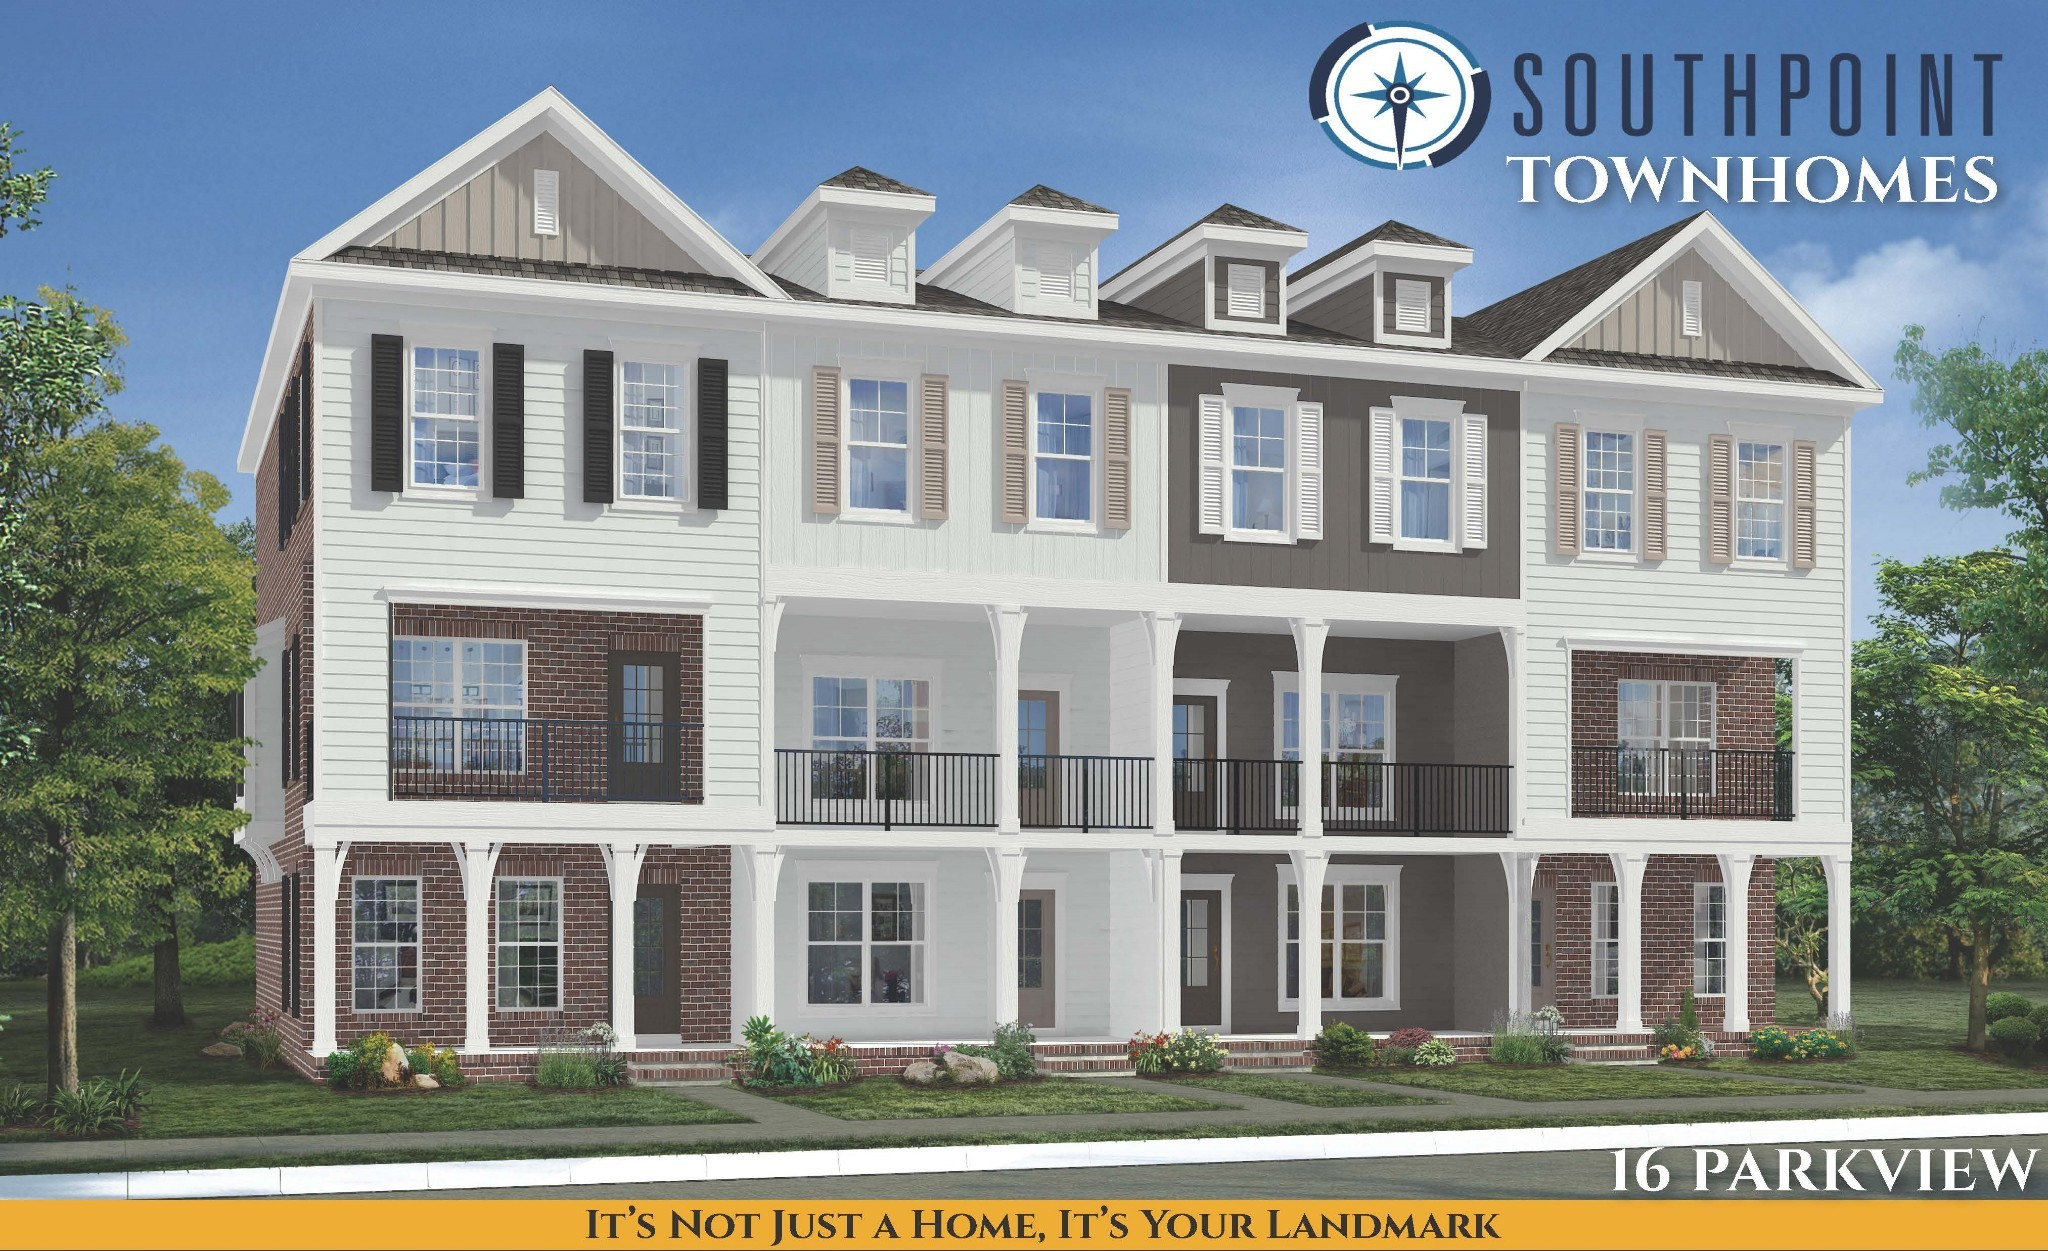 Come see Brentwood's newest luxury townhomes at Southpoint! Each unit features 3-level living with 2-car garages and customizable luxury finishes! Walkable community adjacent to brand new shopping center and restaurants/retail. Be sure to ask about current Buyer Incentives running thru the end of August! End unit!